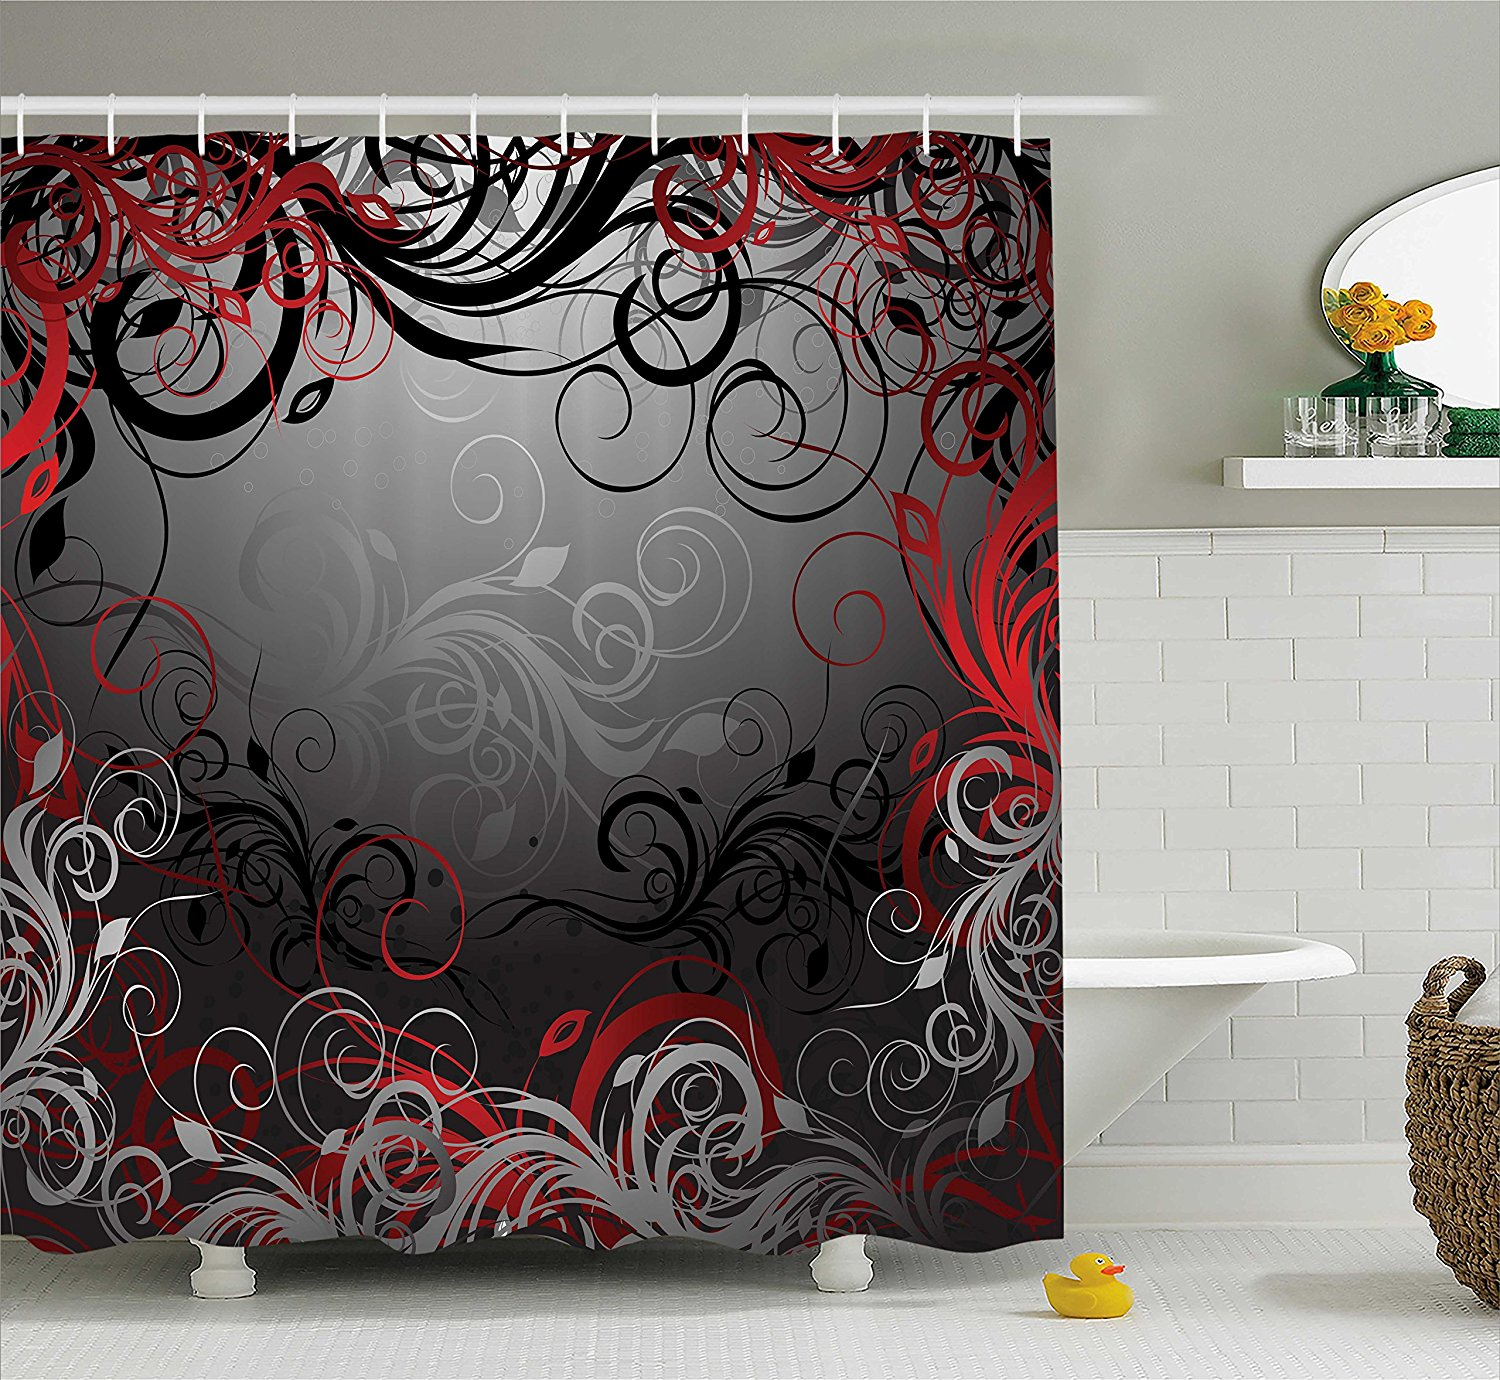 Red And Black Bathroom Decor.Us 12 8 30 Off Red And Black Shower Curtain Mystic Magical Forest Inspired Floral Swirls Leaves Bathroom Decor Set In Shower Curtains From Home